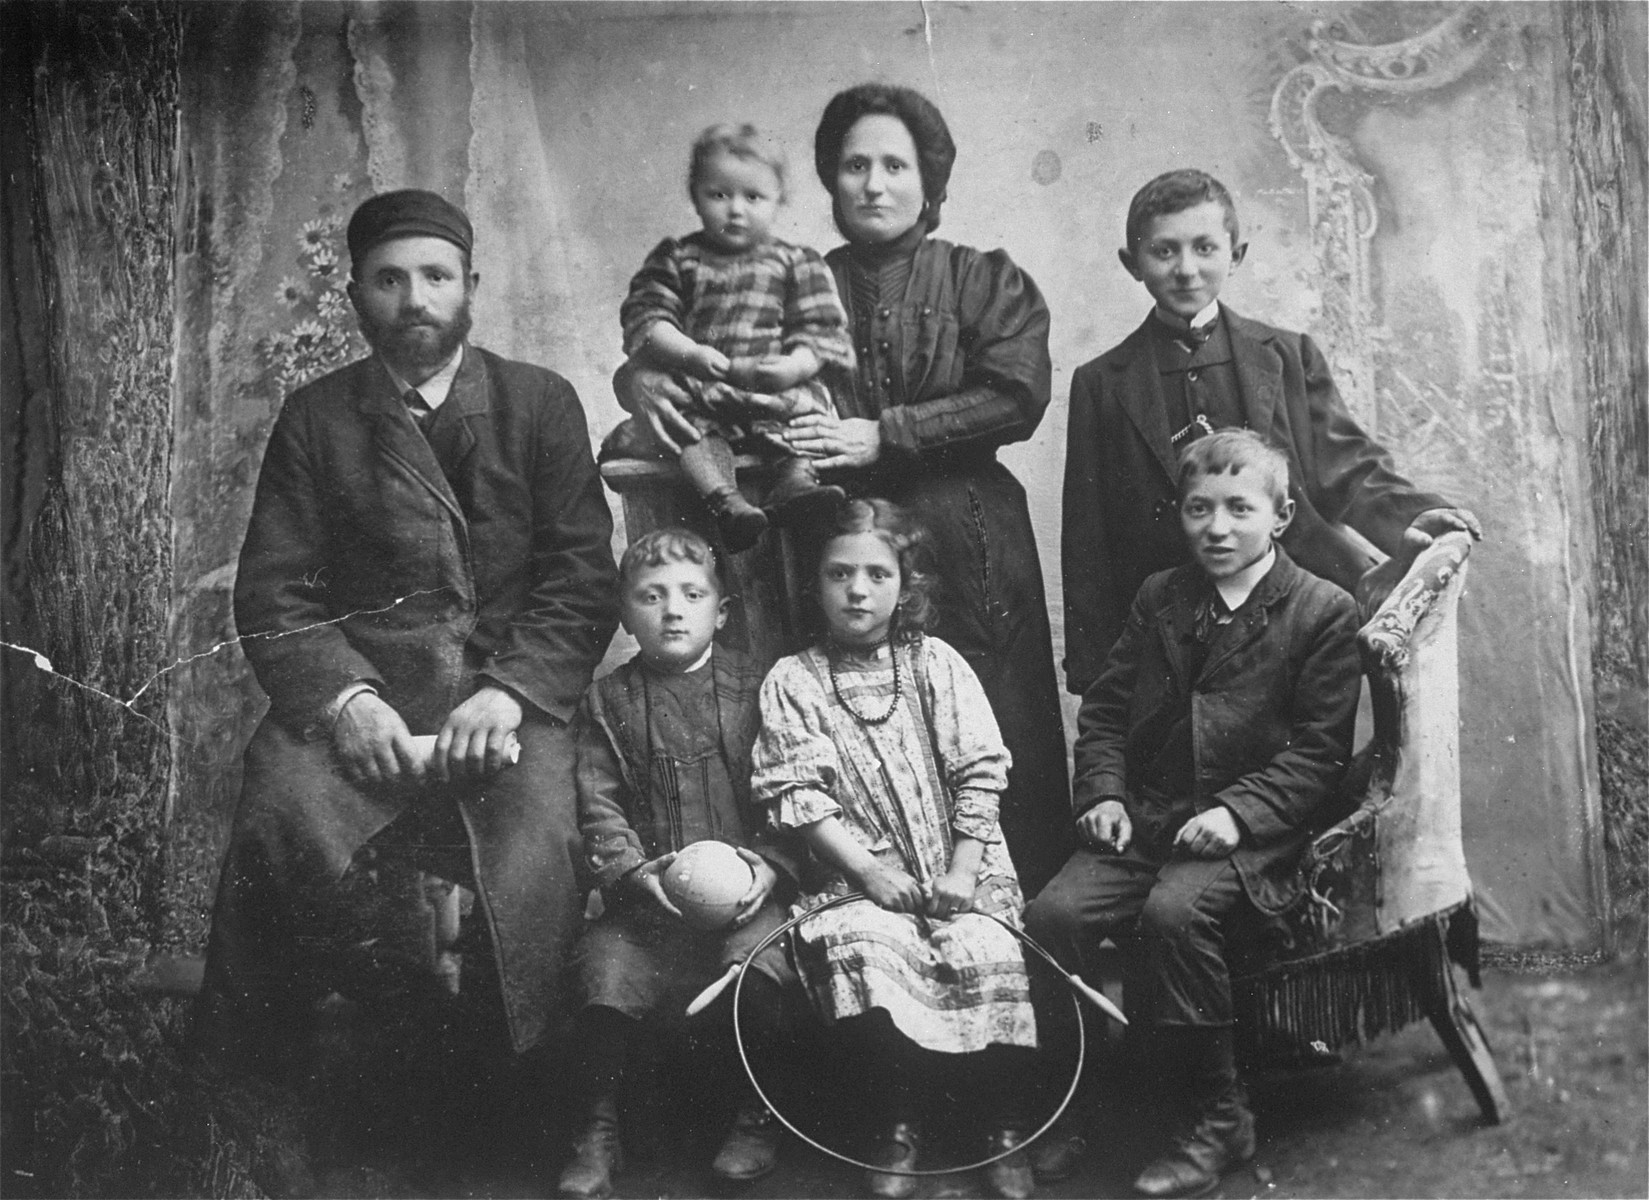 Family photograph of Samuel and Rachel Weiss and their five children: Sarah, Regina (donor's mother), Max, David and Adolph.  The Yiddish inscription on the back reads: To Elke Malche Weiss: Dear sister, I don't know where you are. Send me your address. Sent by your brother. Samuel Weiss died before the war, Rachel and Sarah perished in the Holocaust. Max, David and Adolph immigrated to the U.S via Argentine in the early 1940's. Regina survived Auschwitz and Dachau, came to the U.S after the war, where she met and married Jack Roth.